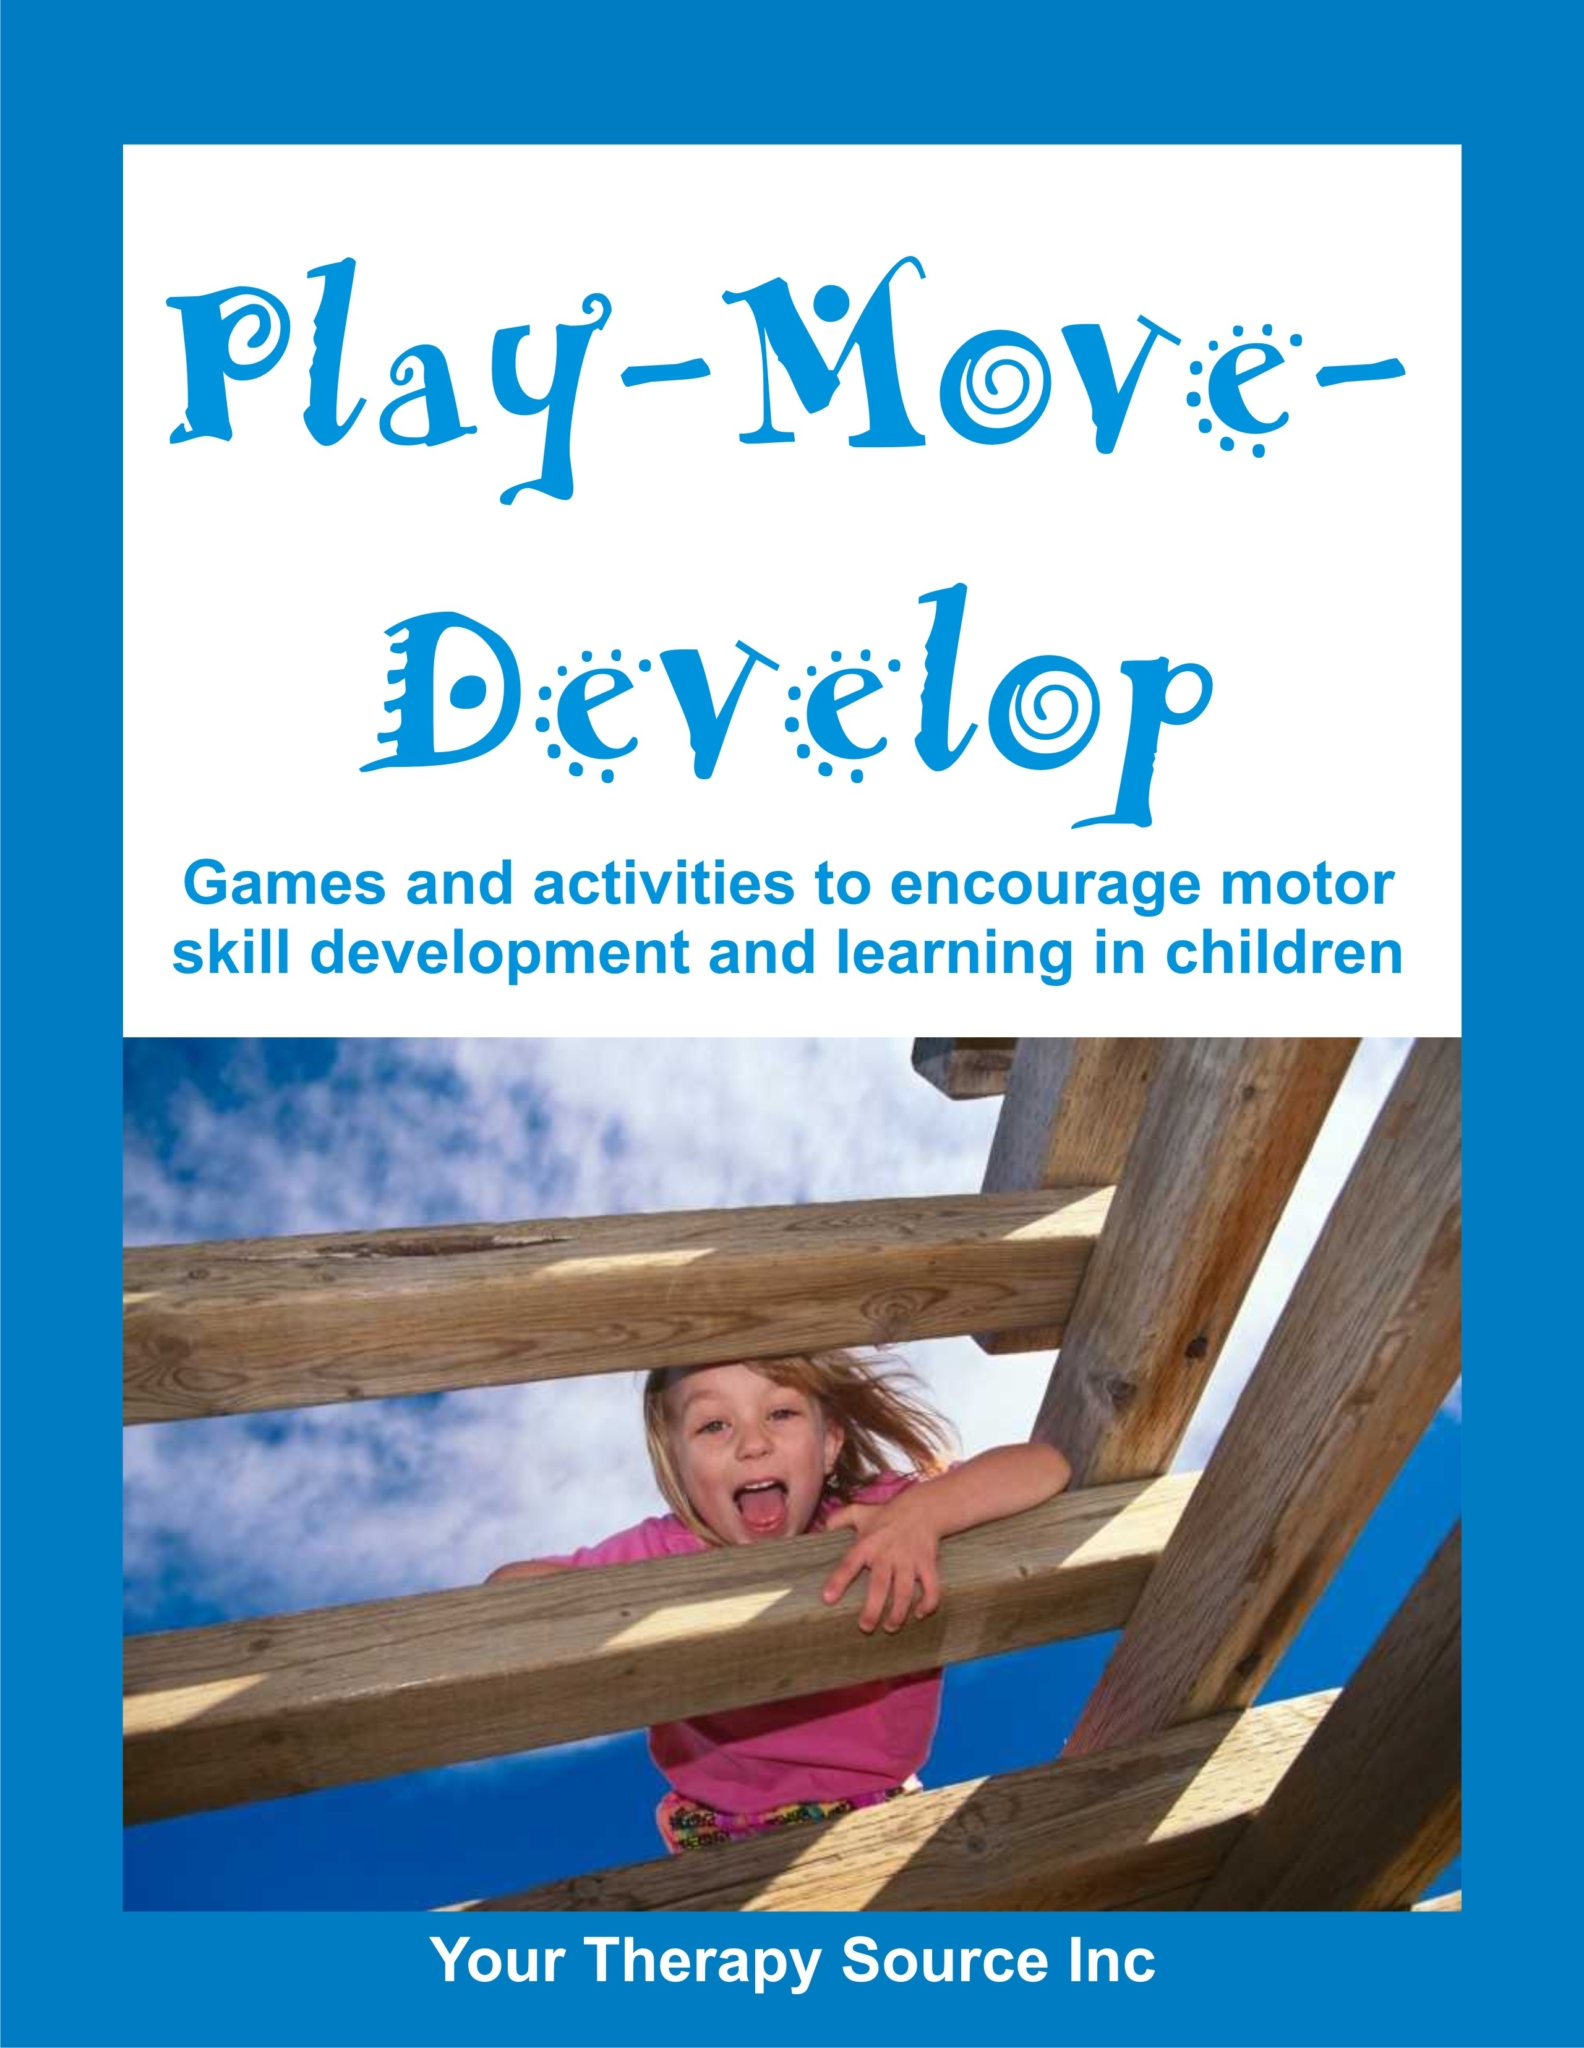 Play Move Develop from https://www.yourtherapysource.com/playmove.html